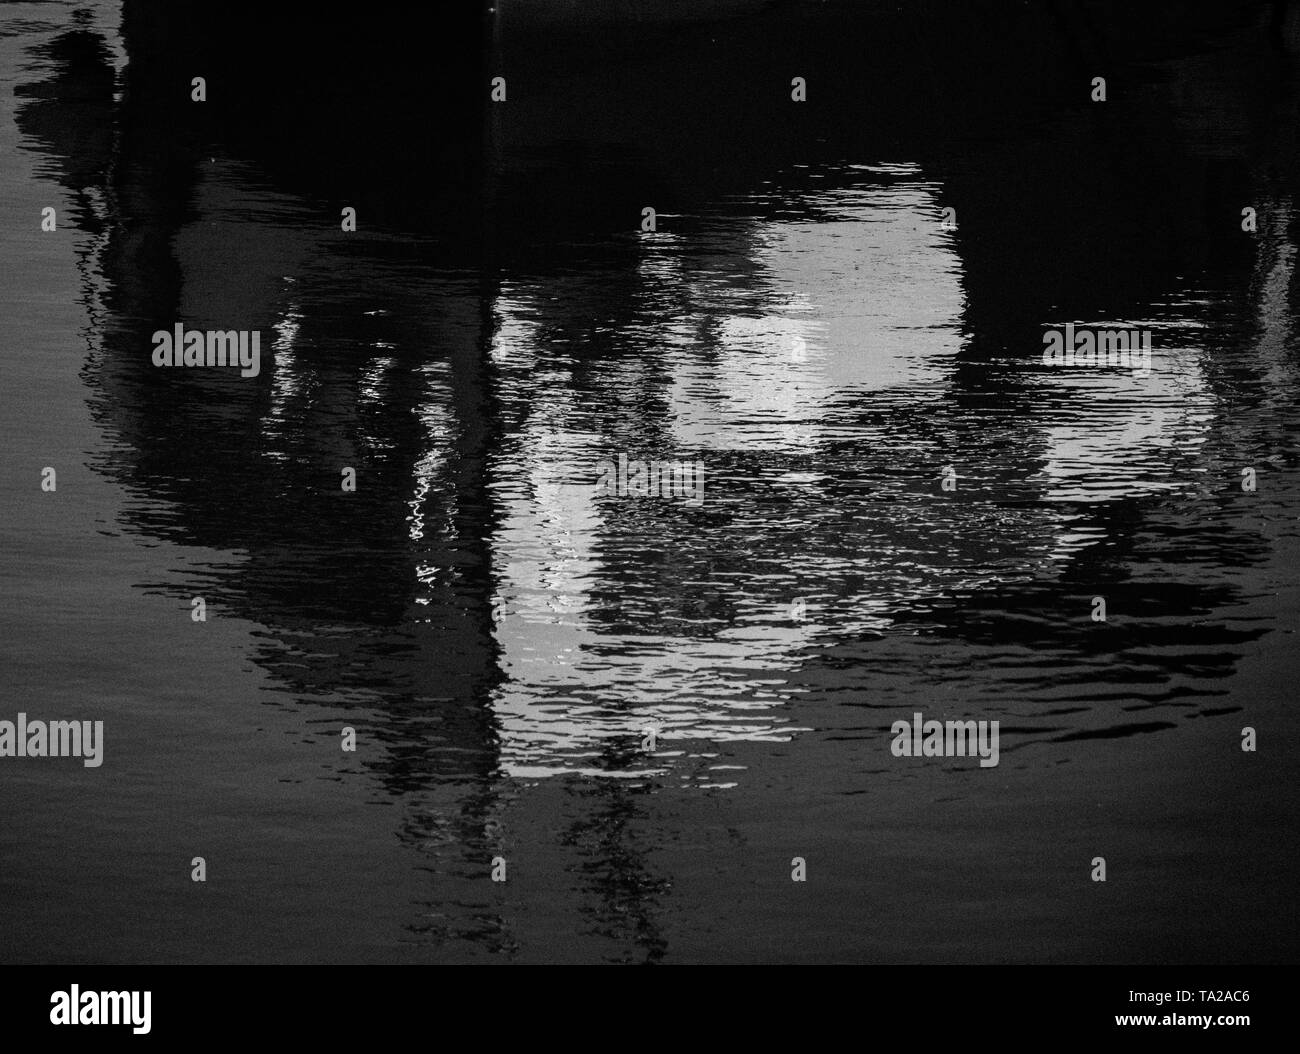 Black and White Photograph, Detail of Boat Reflected in Water of The River Thames, Henley-on-Thames, Oxfordshire, England, UK, GB. - Stock Image